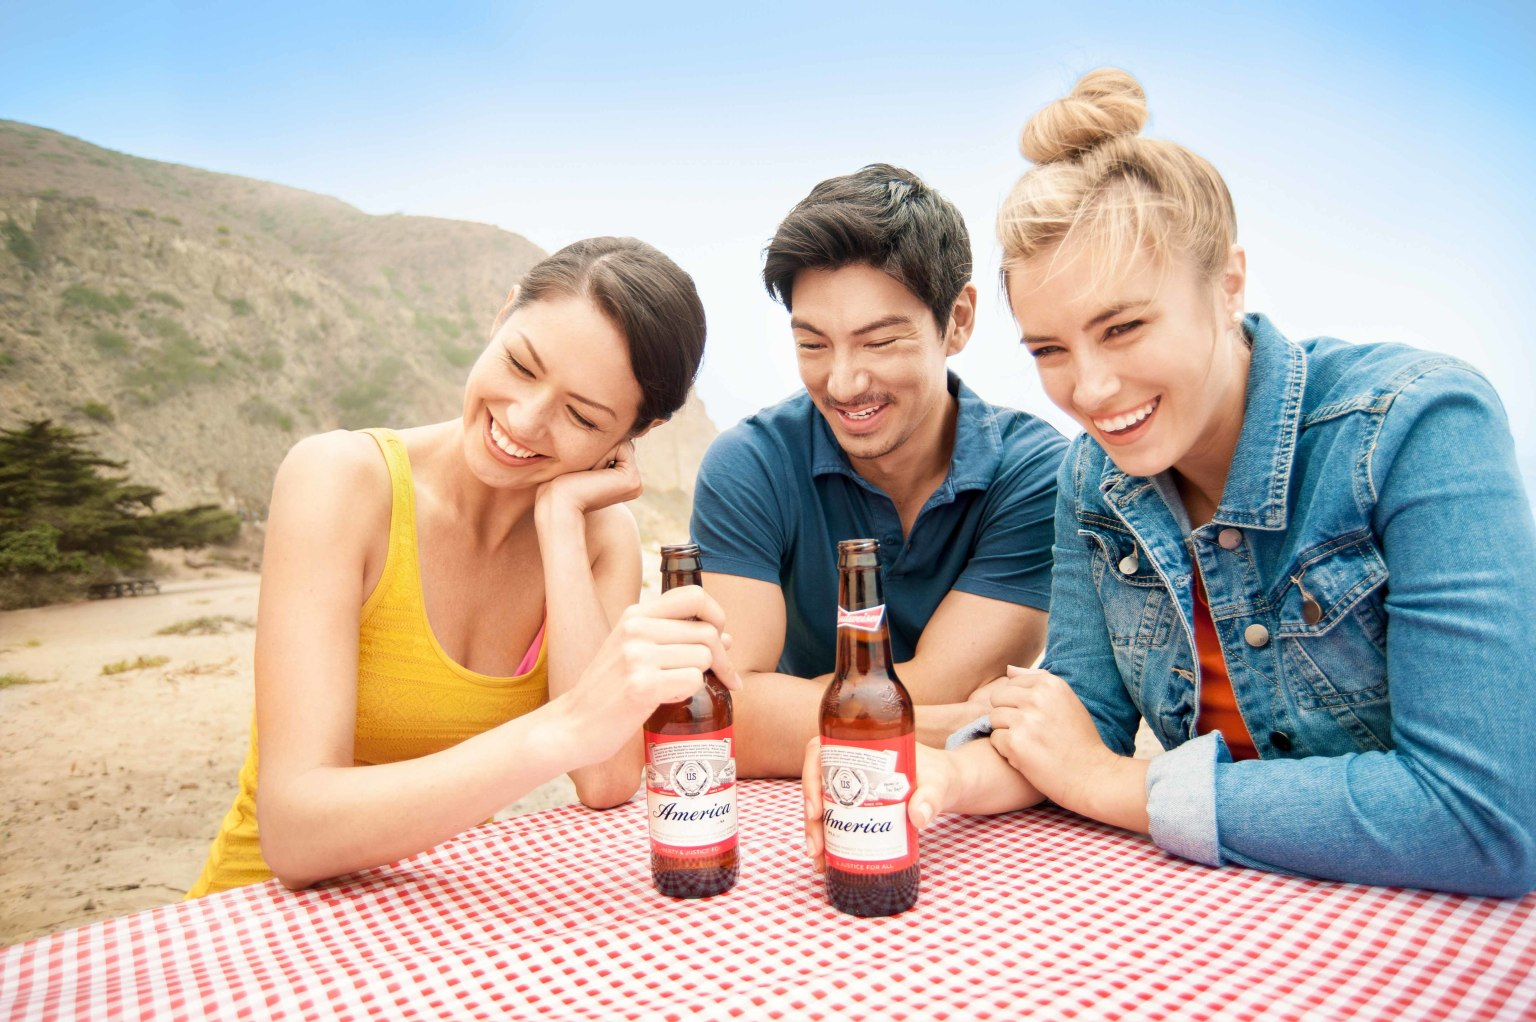 Budweiser - College Friends